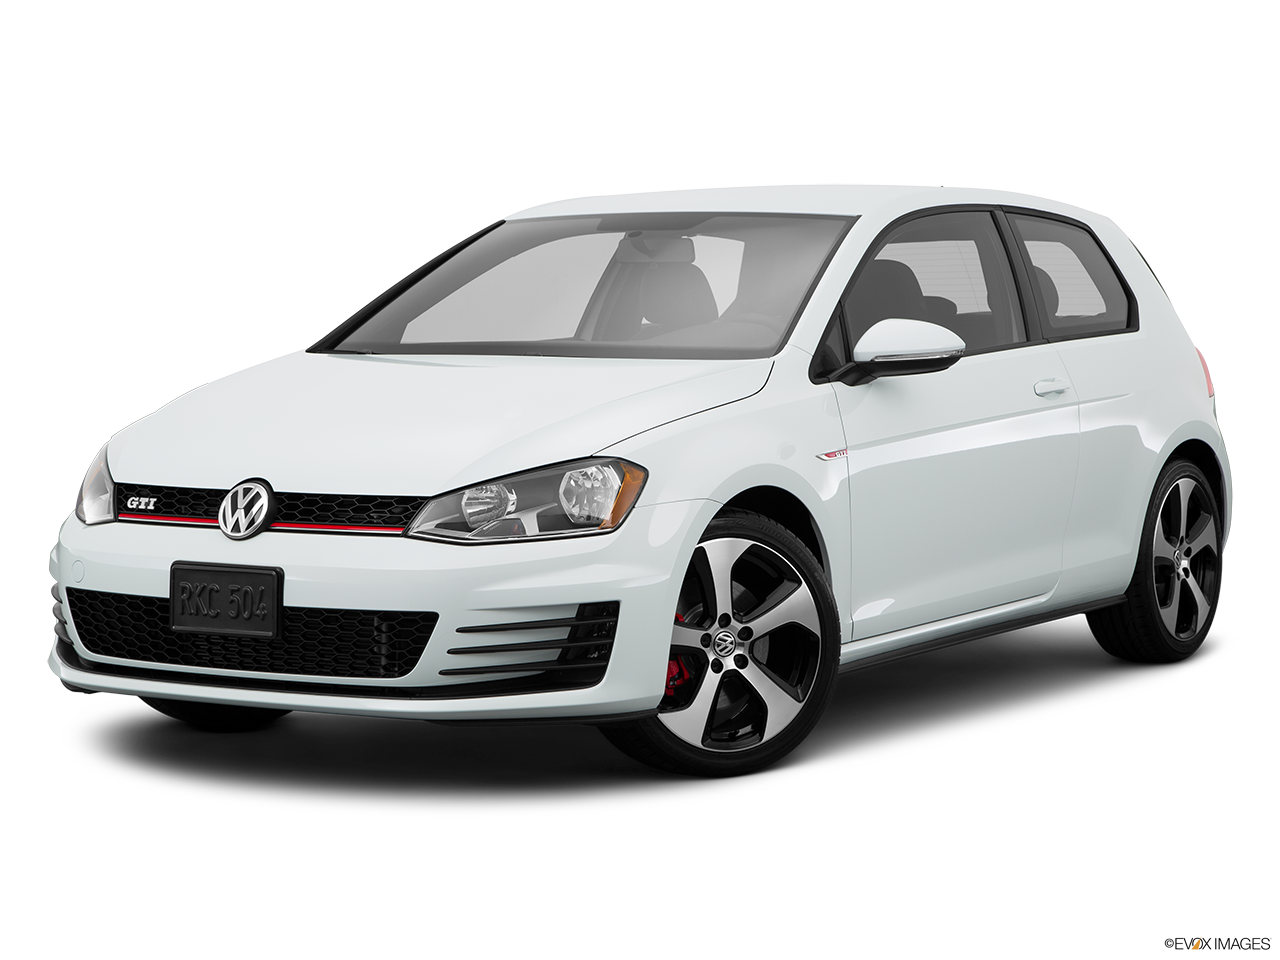 2015 Volkswagen Golf GTI 2-Door dealer serving Riverside | Moss Bros. Volkswagen